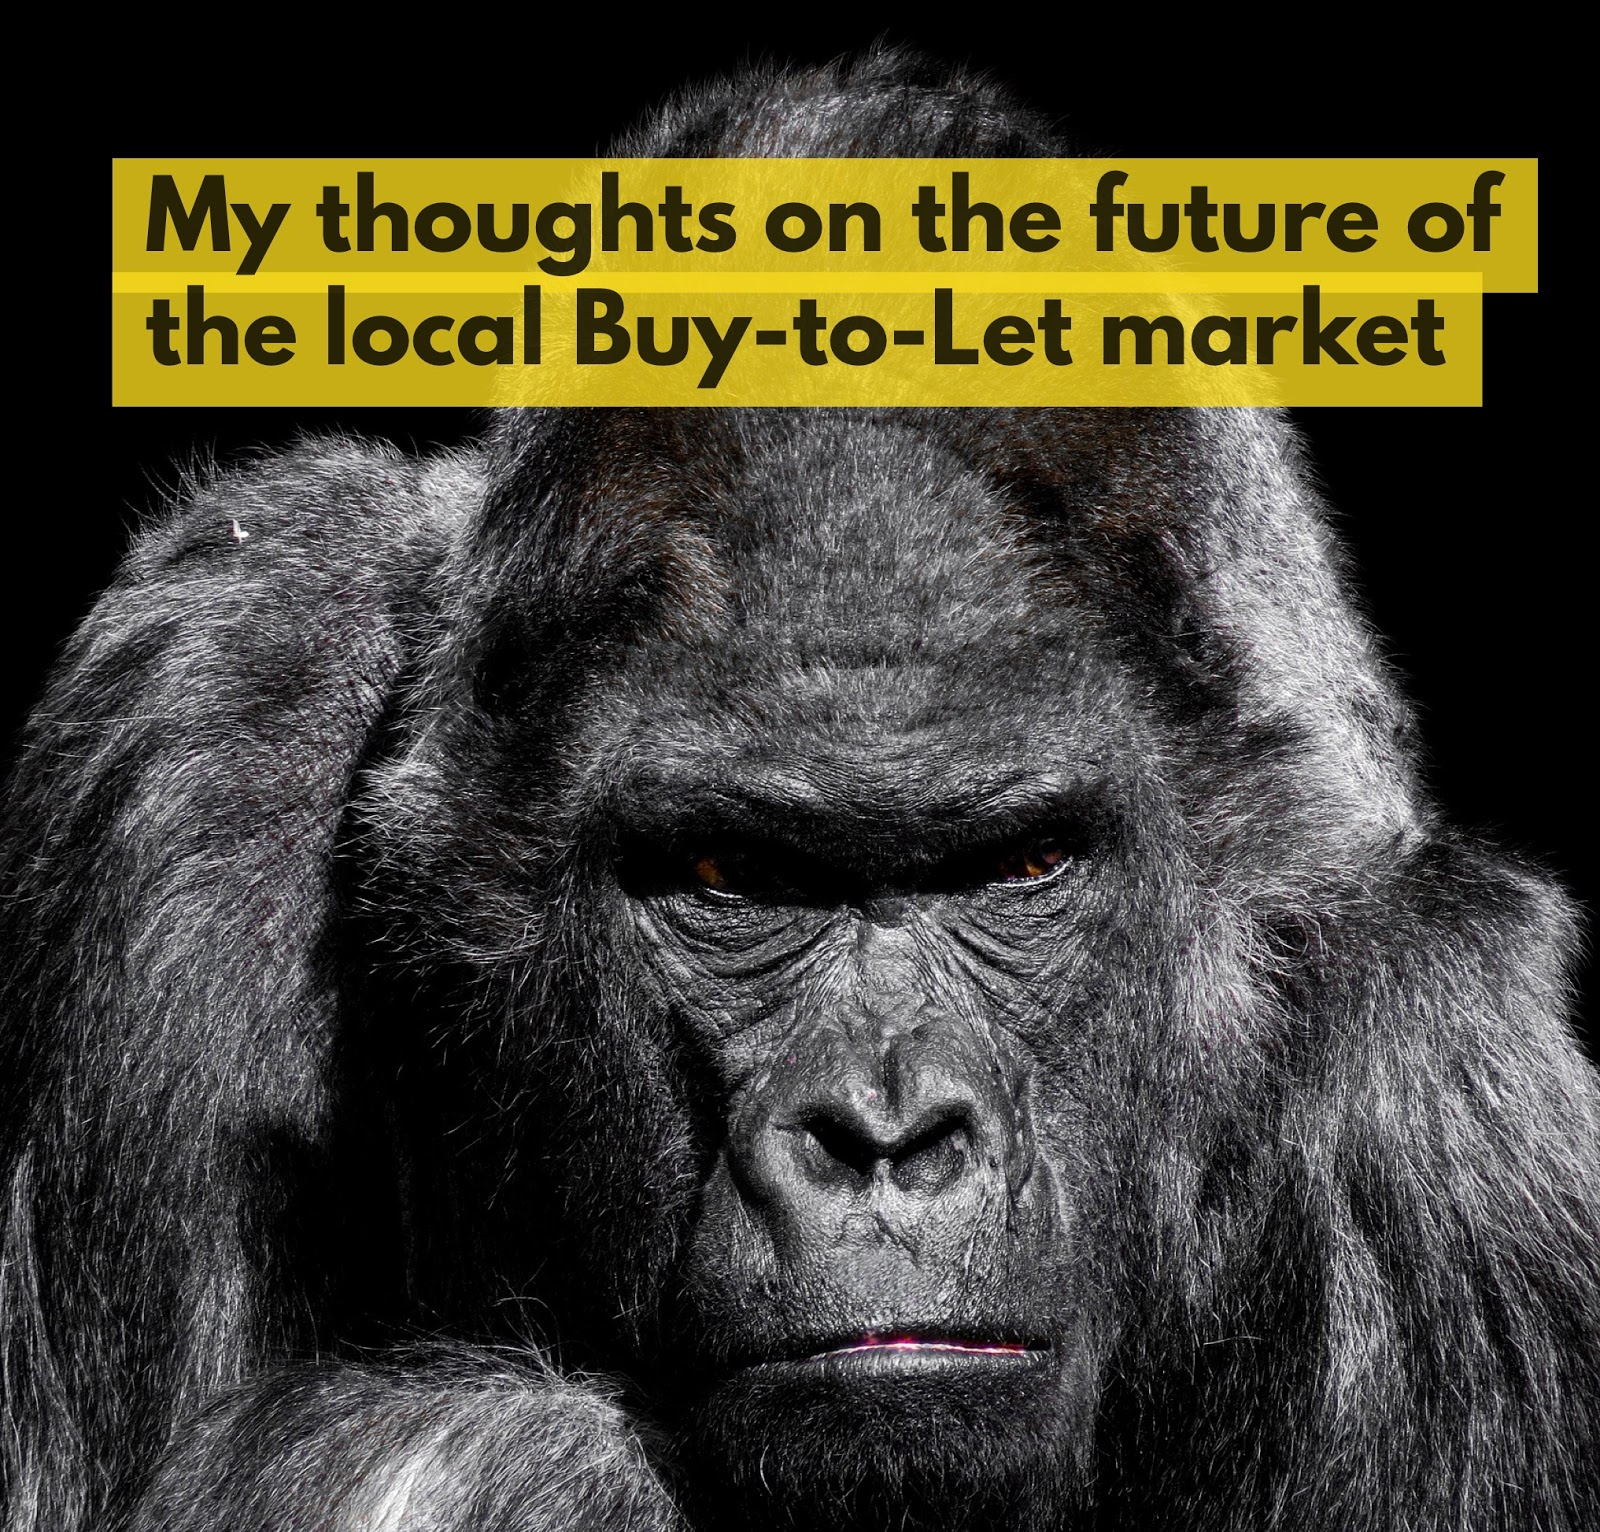 Warrington Property Blog: My thoughts on the future of the